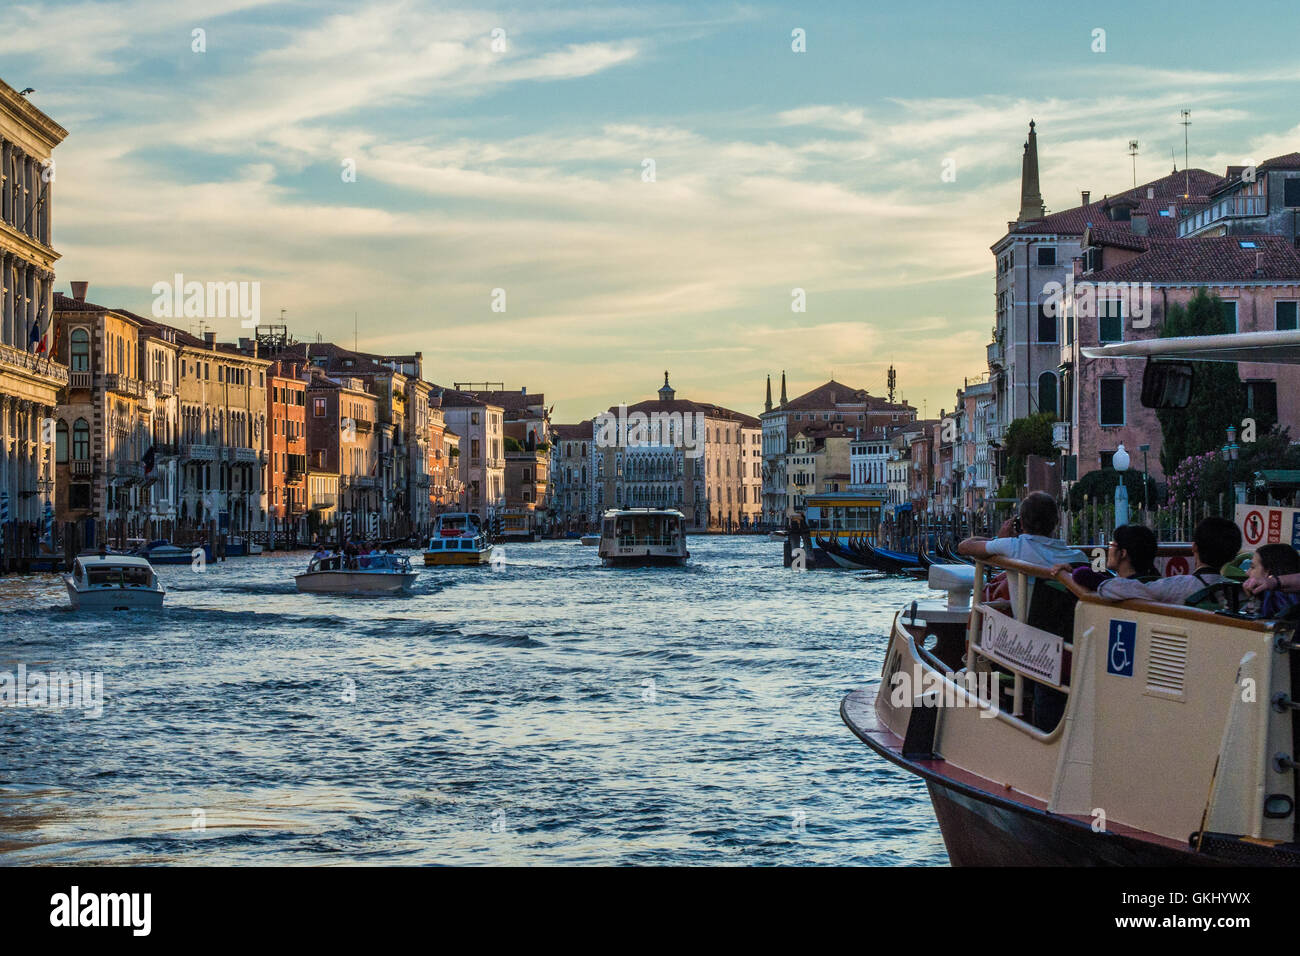 Passengers on a Vaporetto (Water Bus) gazing down the Grand Canal, Venice, Veneto province, Italy. - Stock Image